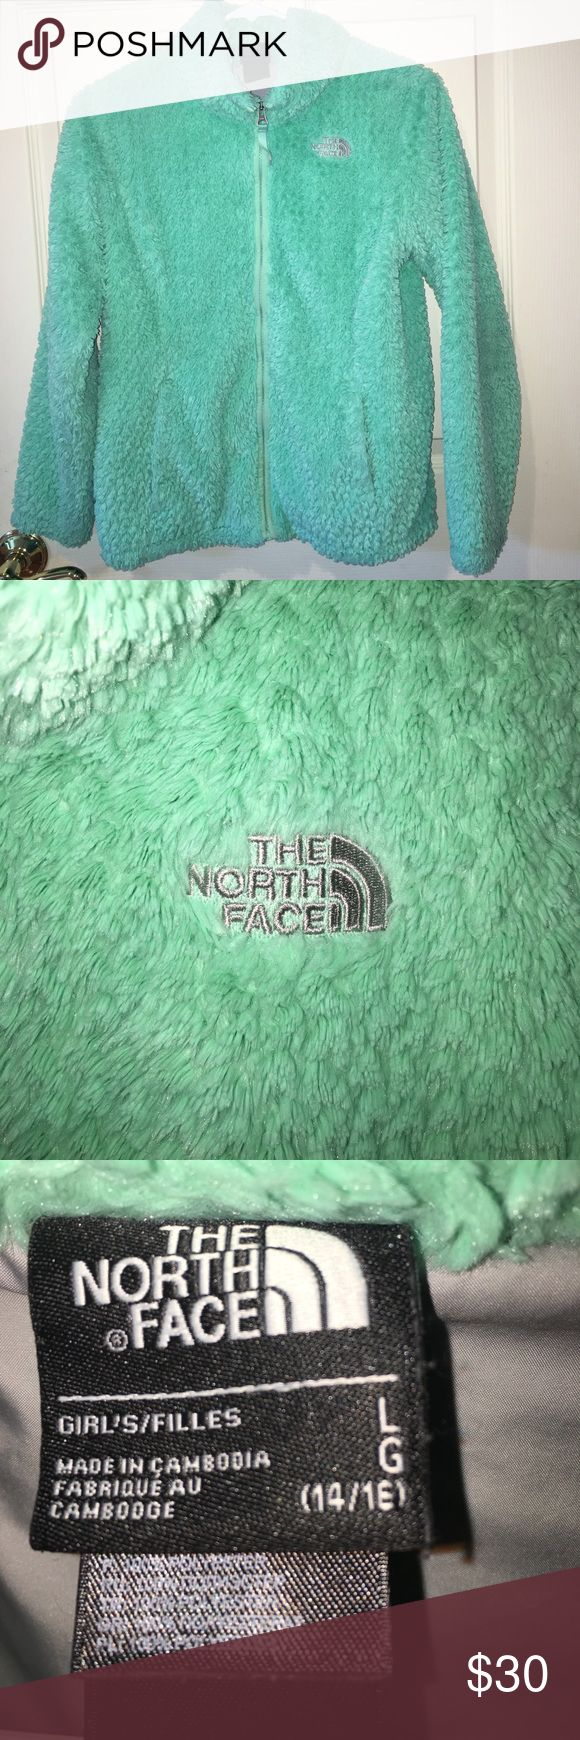 Beautiful Girls North Face Jacket Excellent condition. Mint green. Nice and warm!! Girls size Large 14/16 The North Face Jackets & Coats